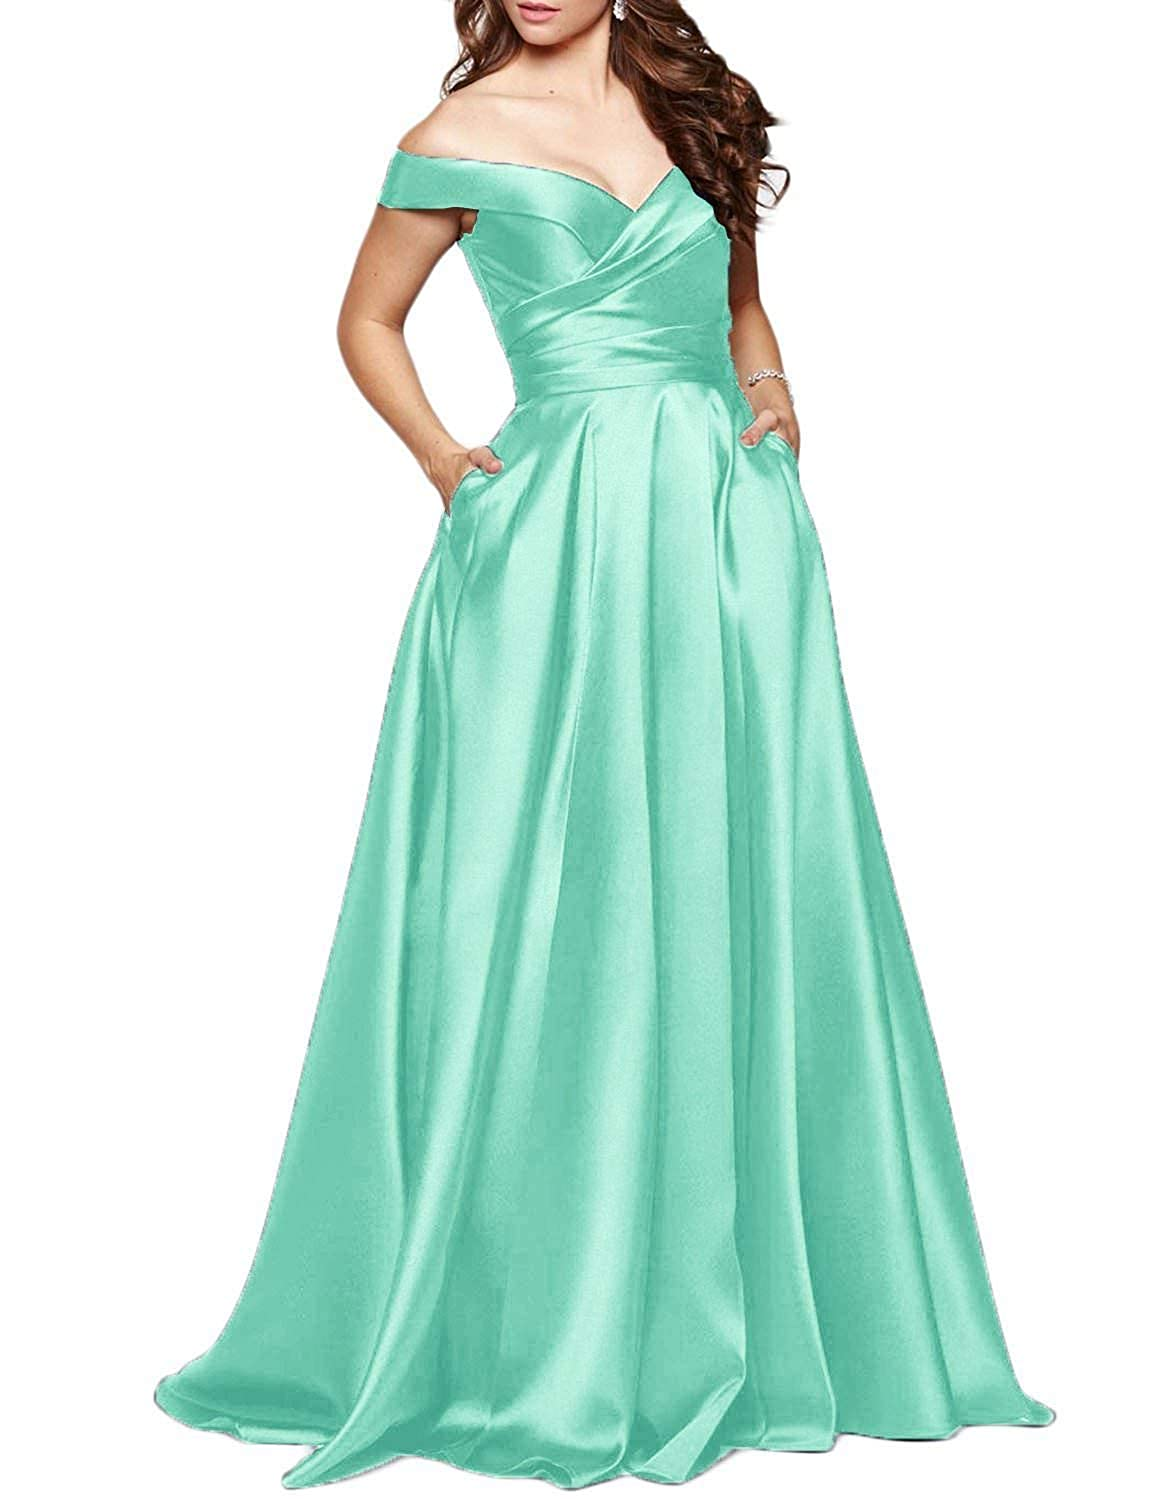 MKbridal Womens Long Prom Dresses with Pockets Maxi Off Shoulder Satin Evening Party Gowns